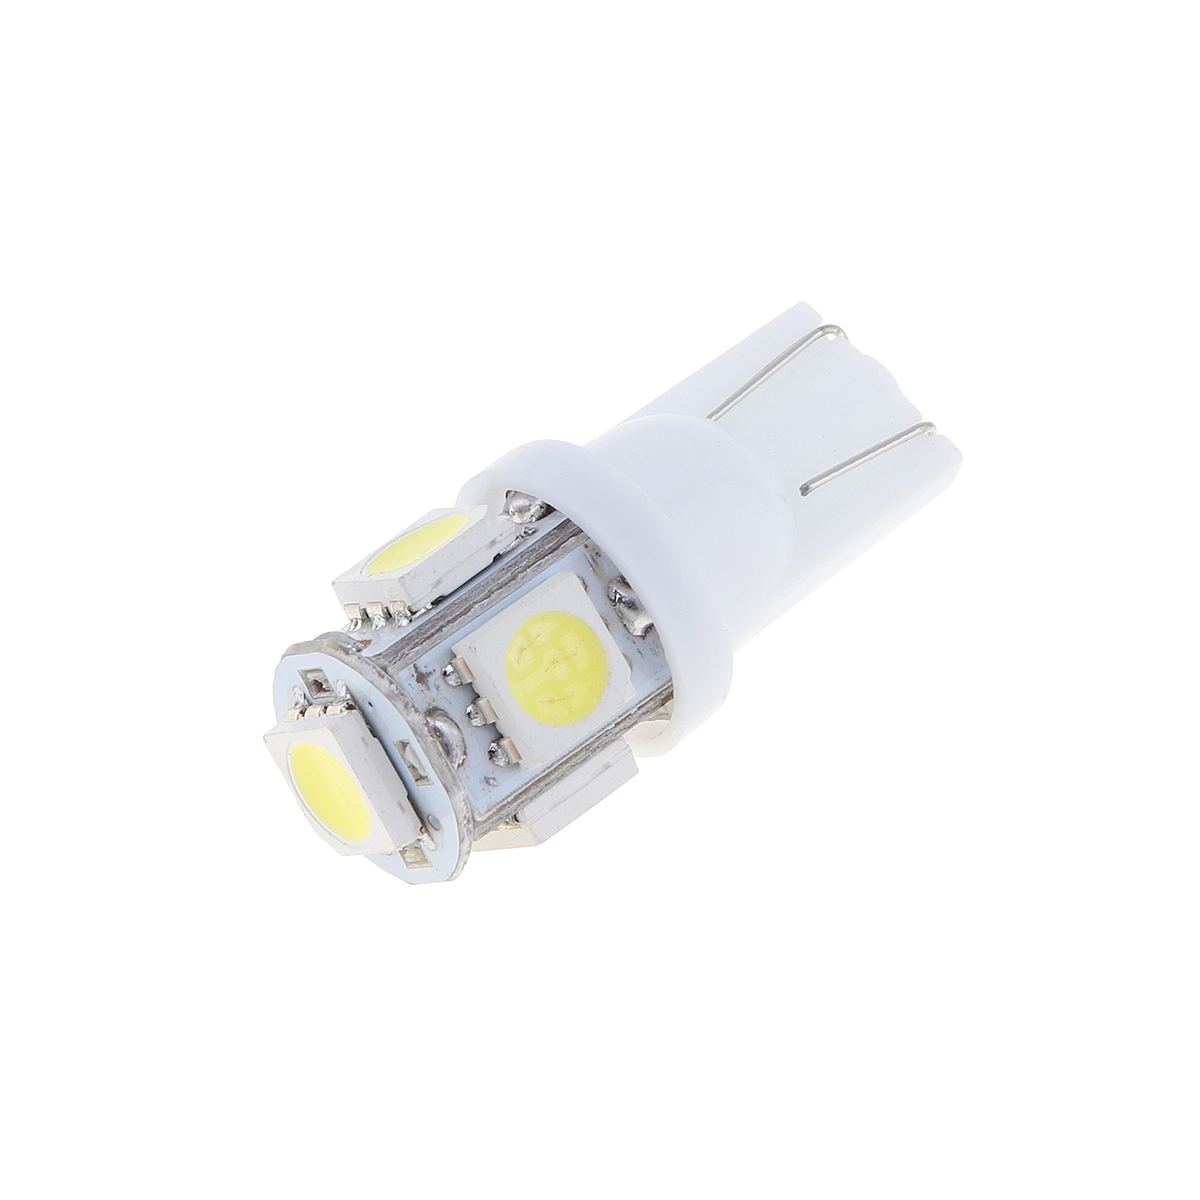 Image 5 - 20x  Car LED Signal Blub Interior Reading Light Super Bright Auto Wedge Side License Plate Trunk Luggage Lamp  Super White-in Car Headlight Bulbs(LED) from Automobiles & Motorcycles